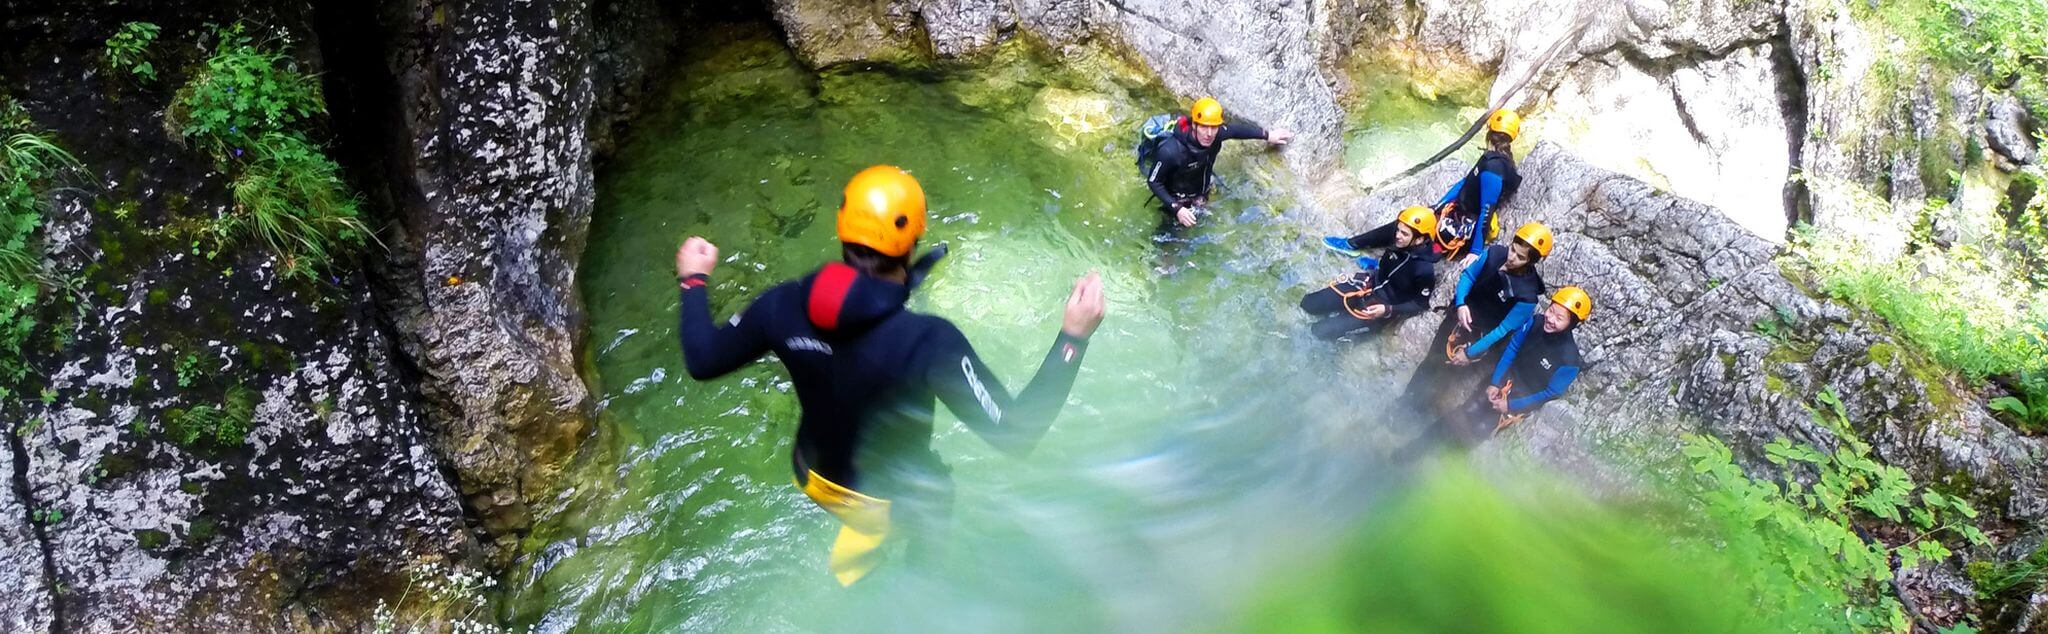 Canyoning in Córdoba